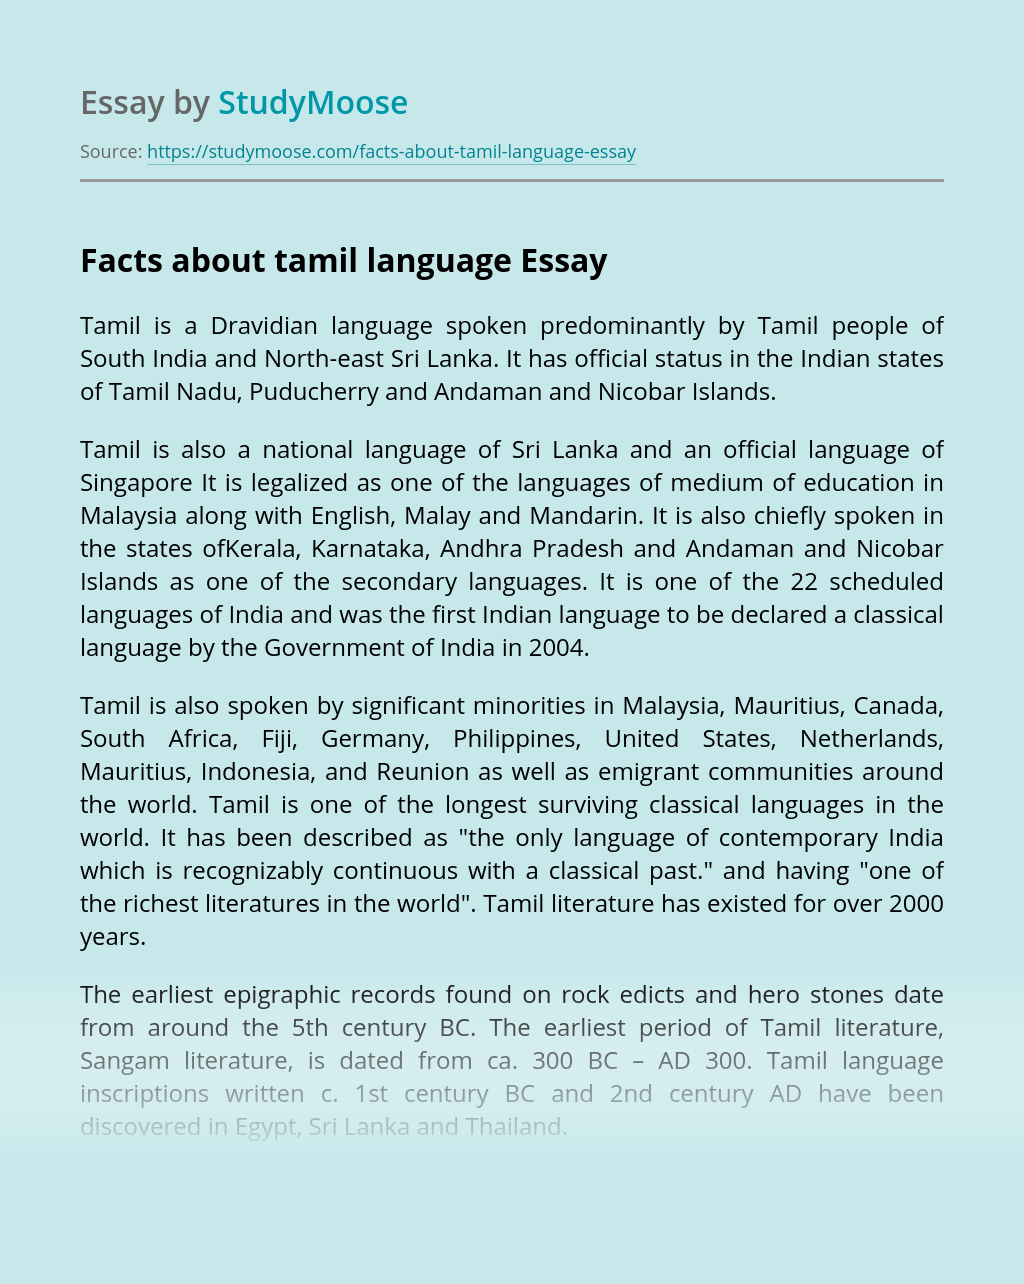 Facts about tamil language